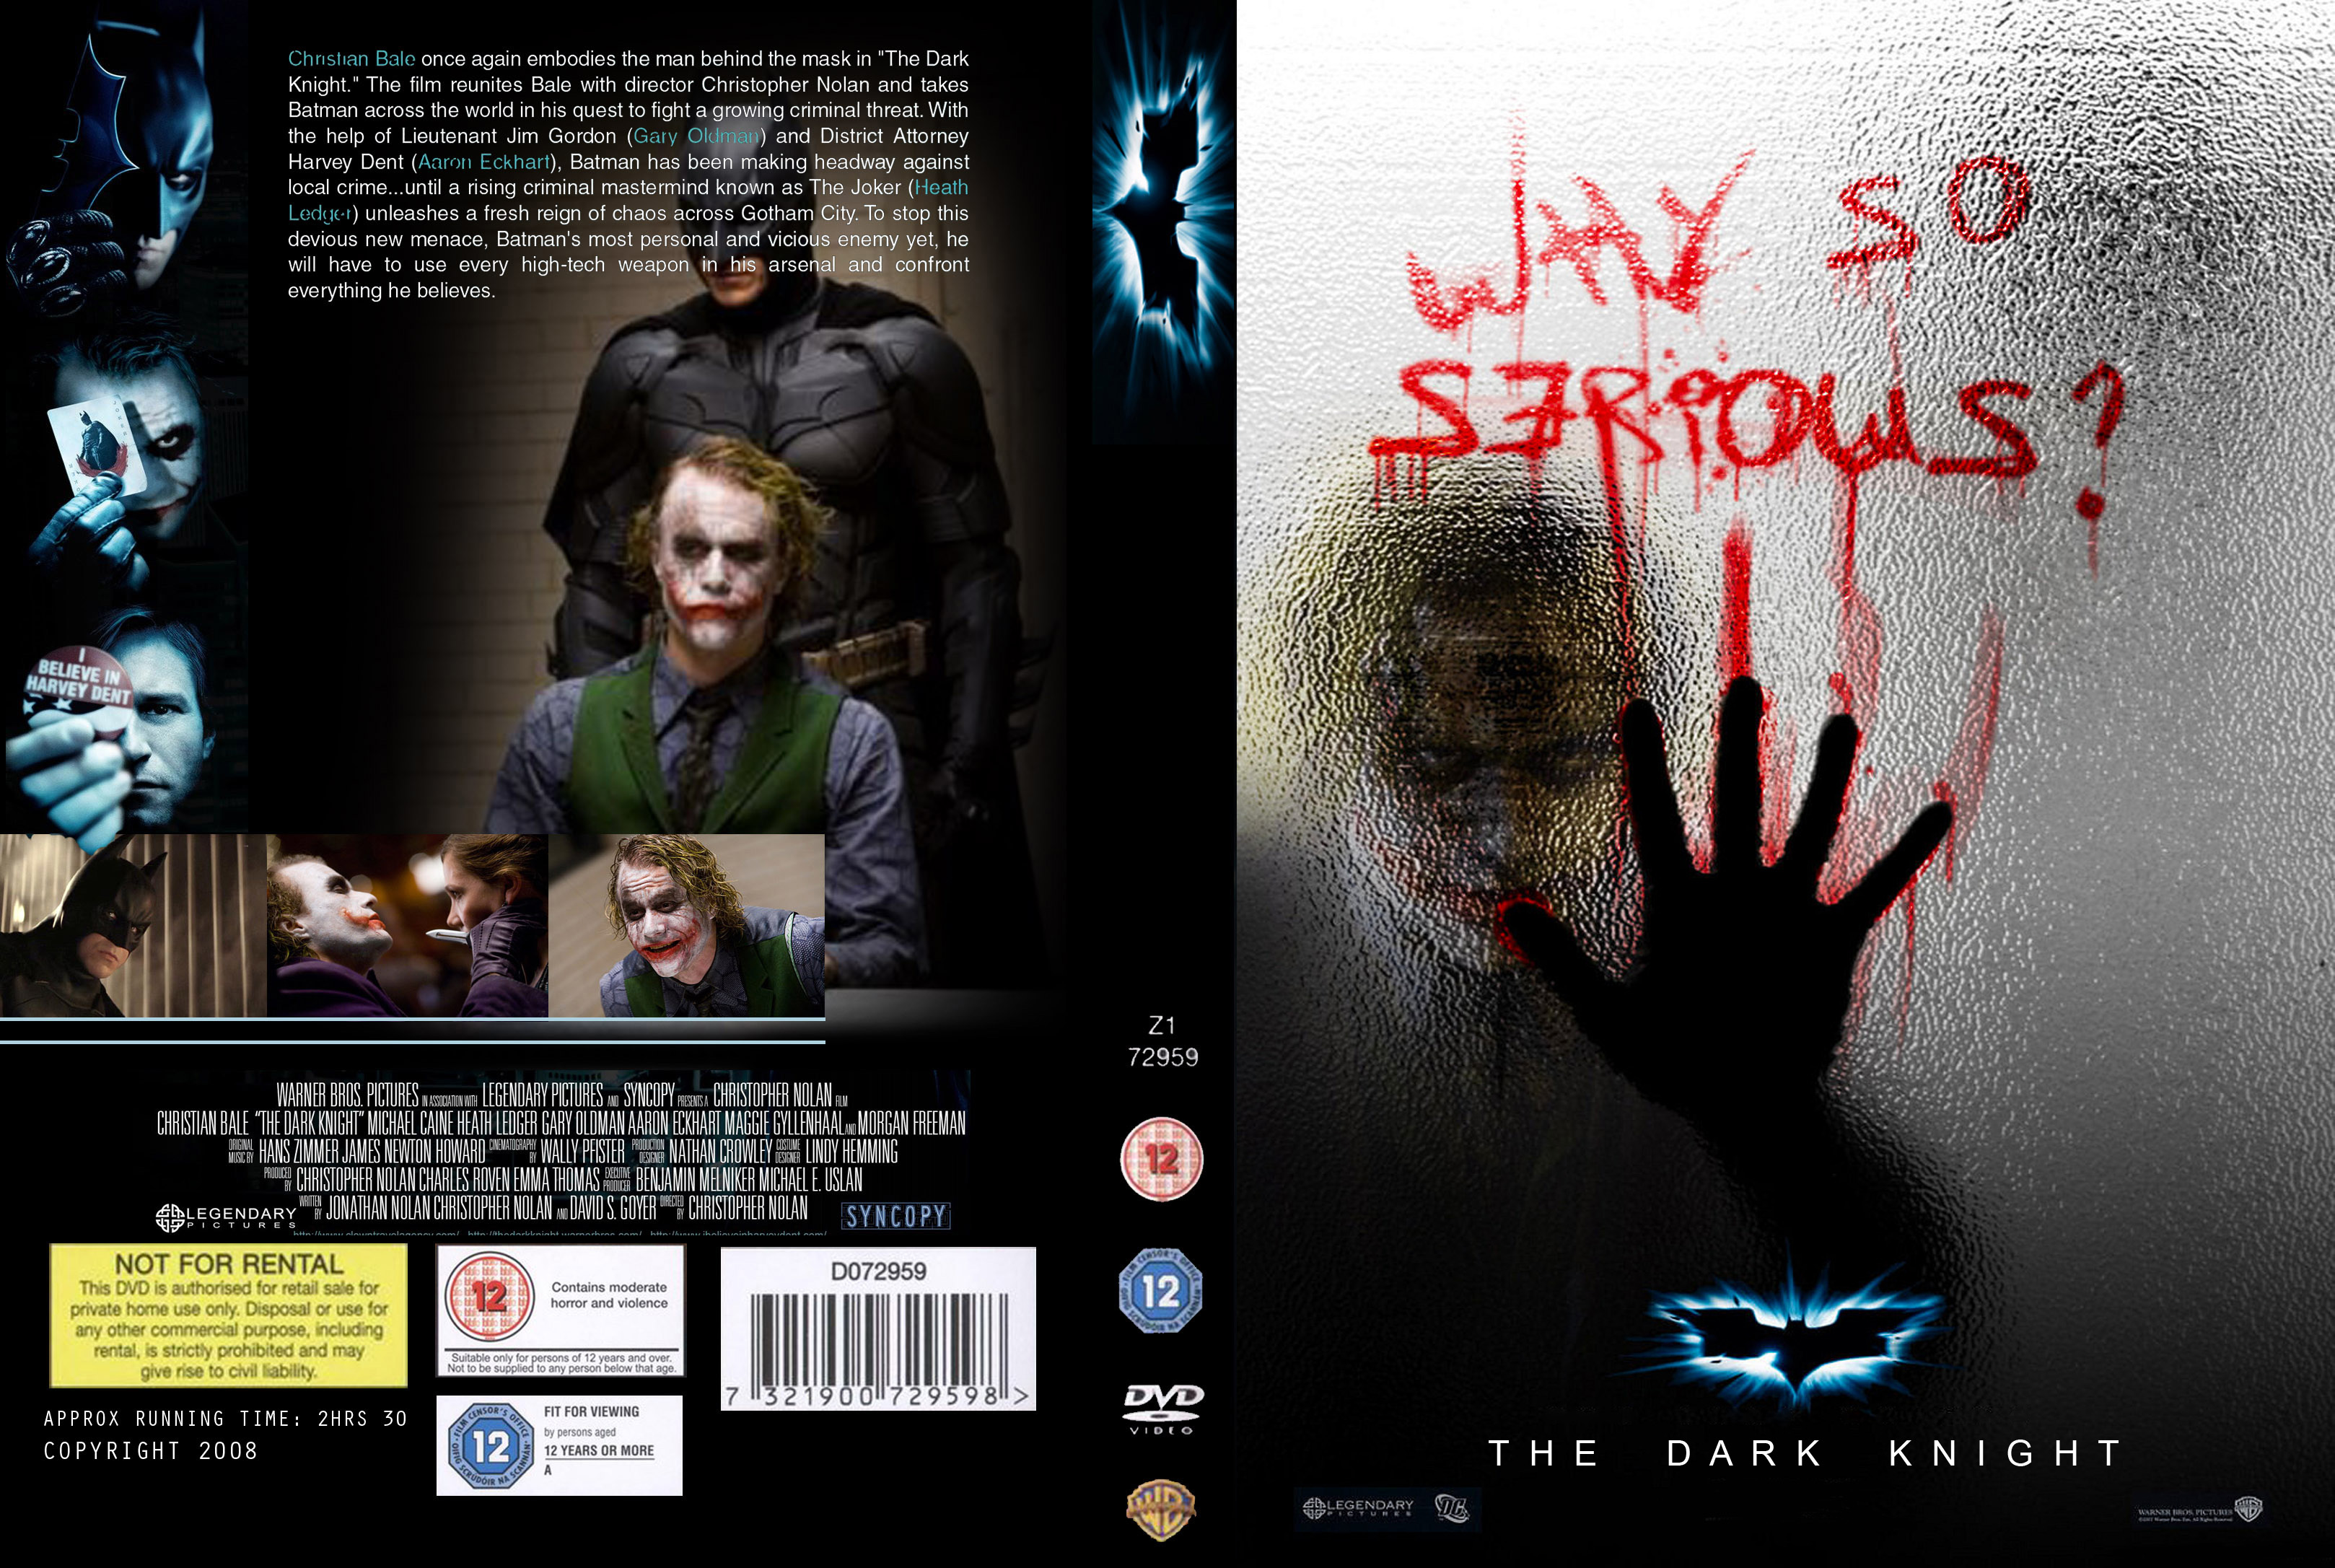 The Dark Knight DVD Cover by taghi on DeviantArt